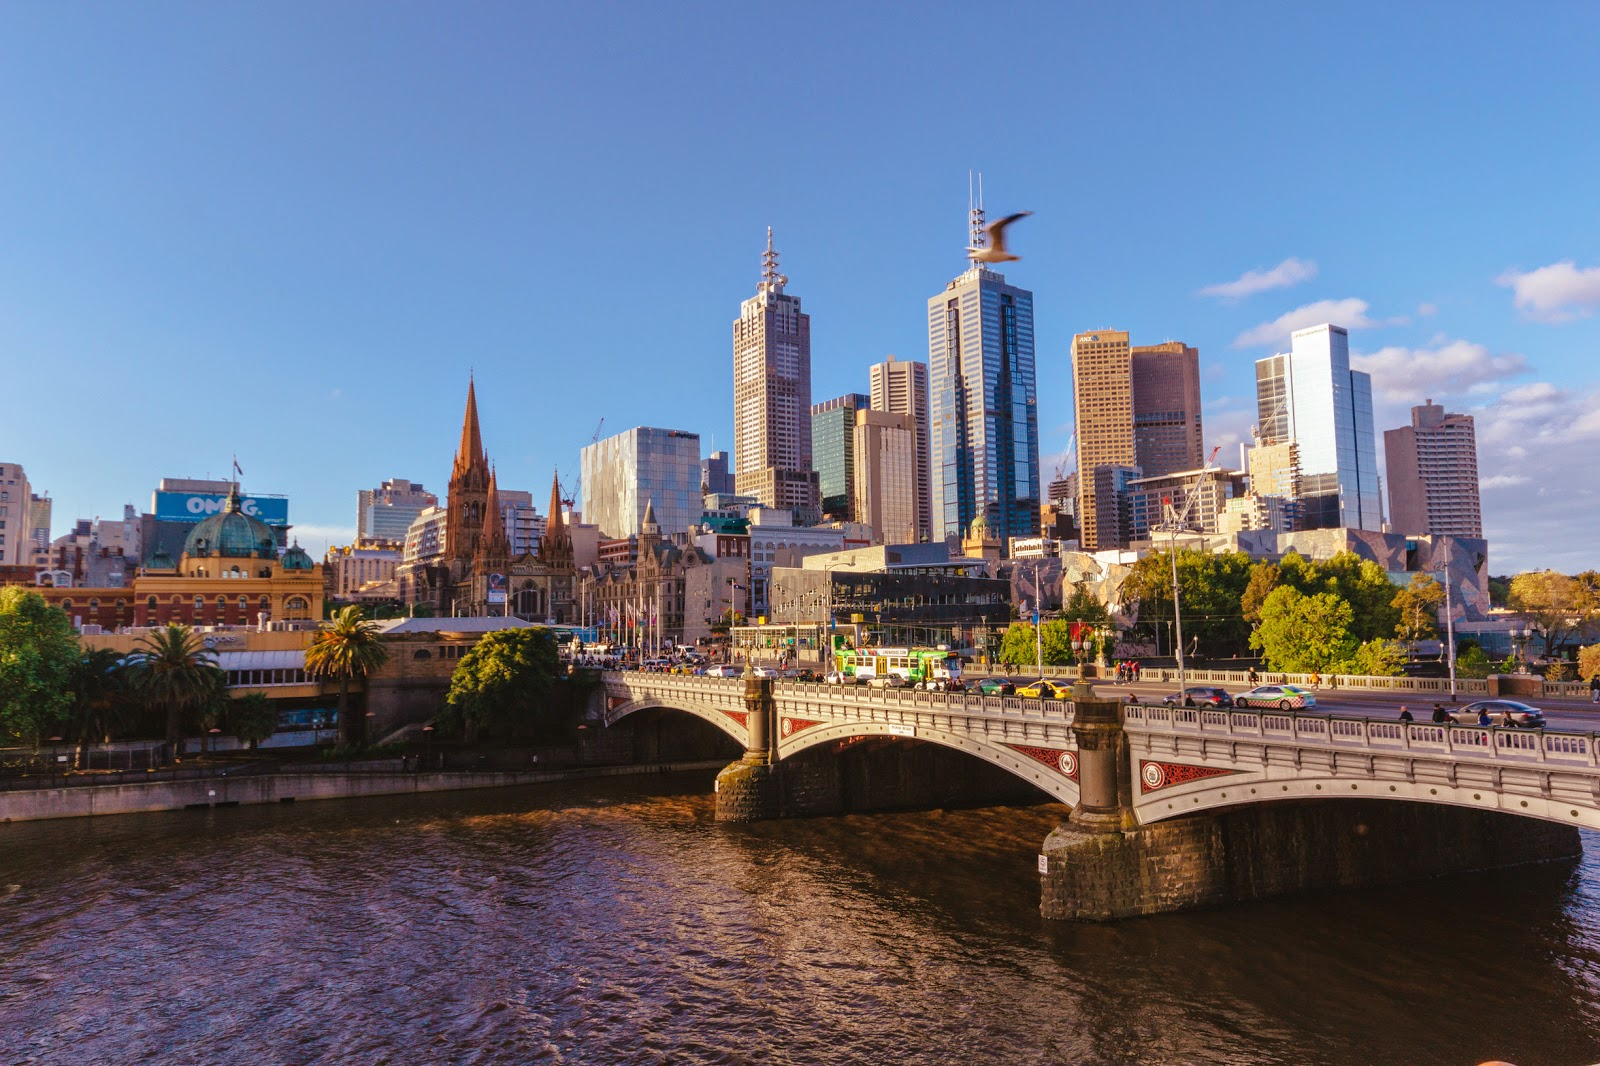 The Melbourne CBD